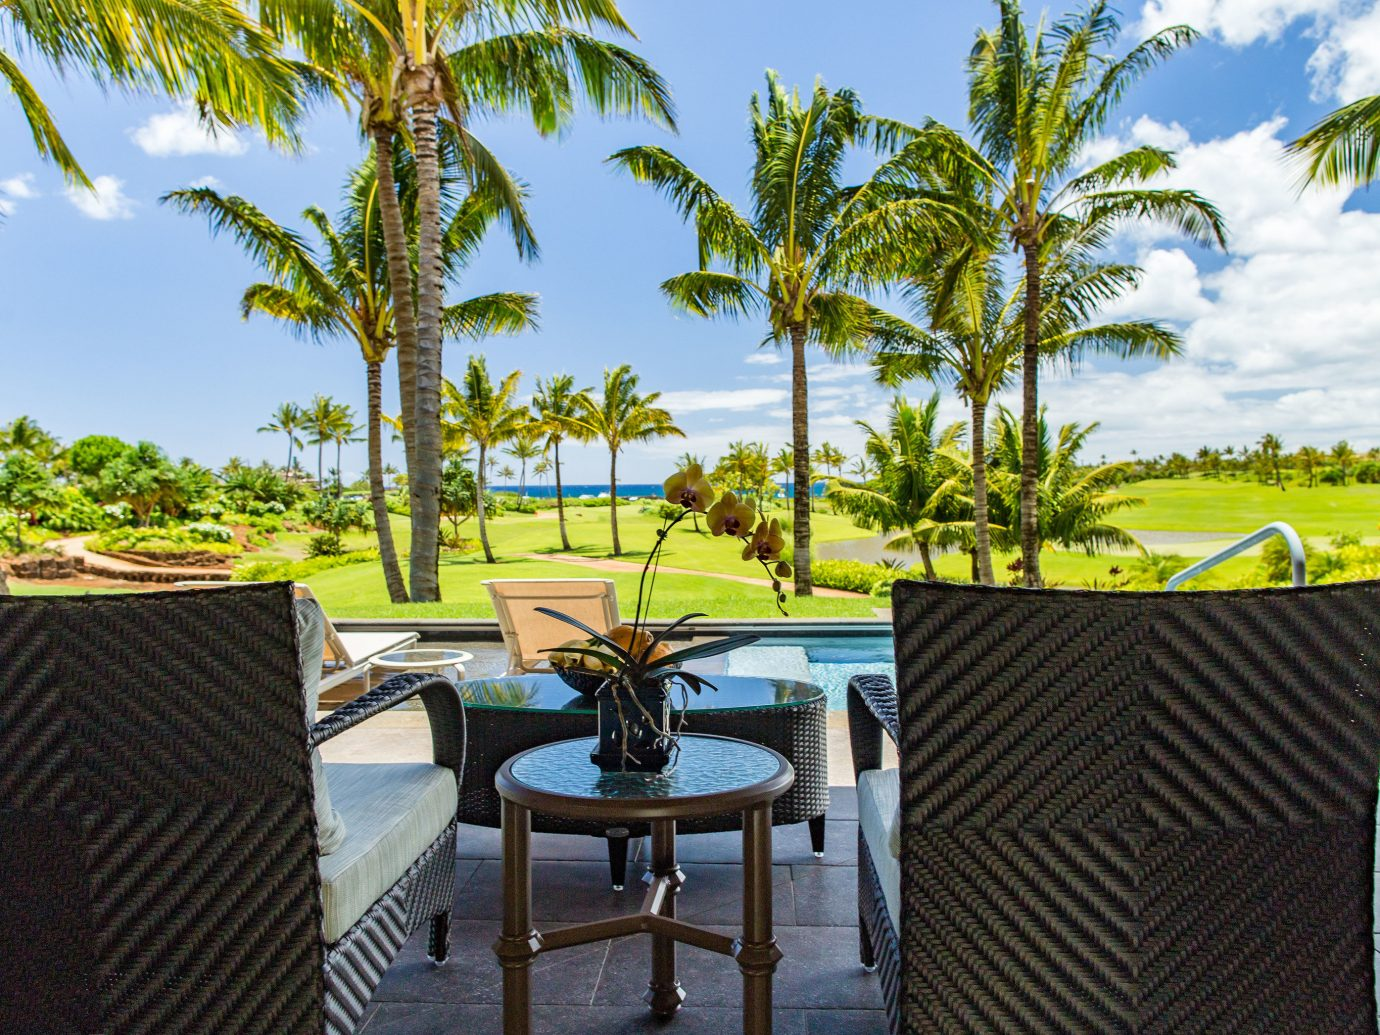 Hotels lawn lounge chairs outdoor lounge palm trees Patio remote Romance Scenic views Terrace Tropical view tree sky outdoor palm chair property Resort estate vacation Villa real estate backyard